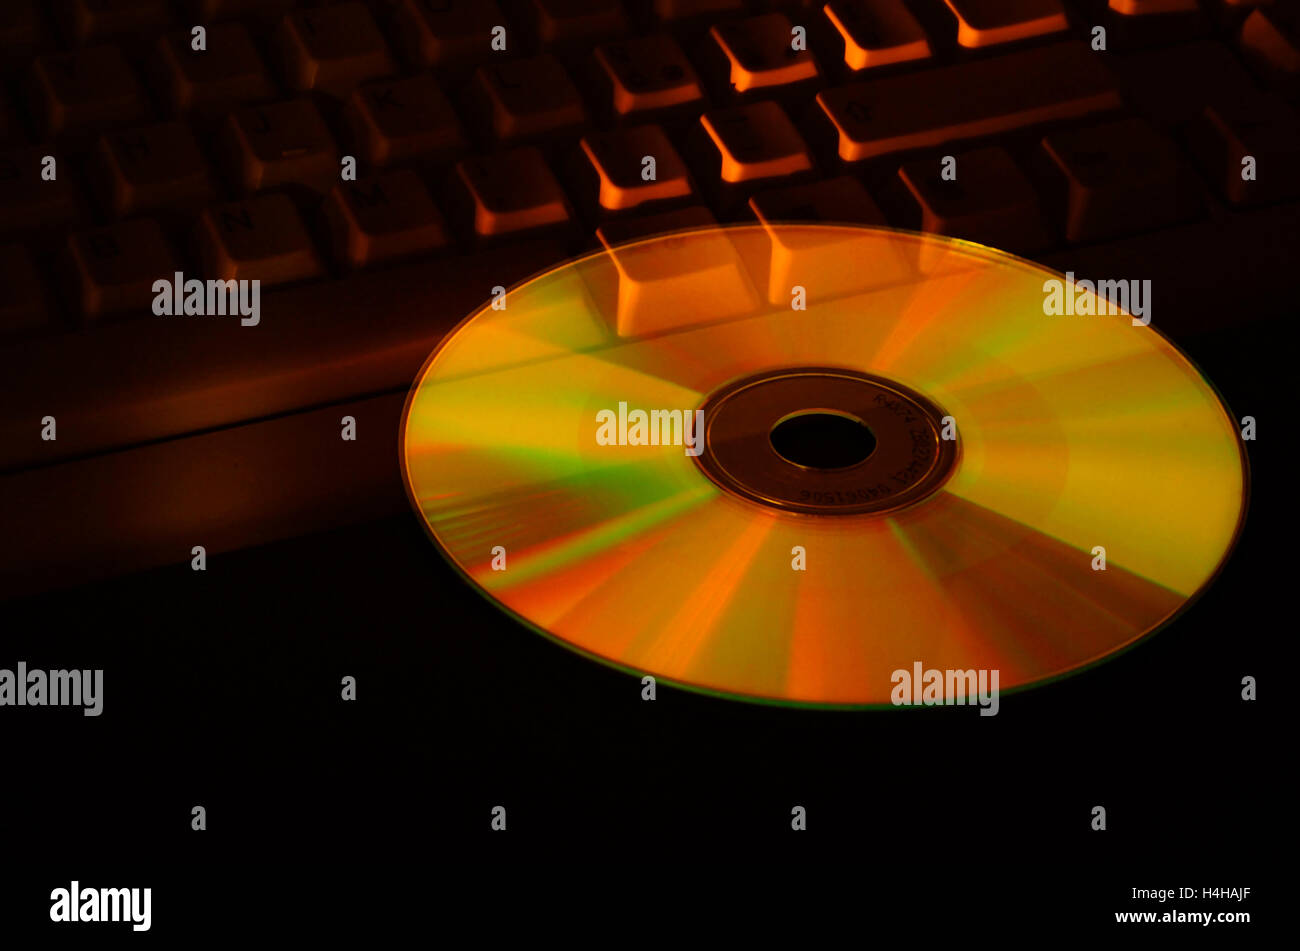 Compact disc flying on the keyboard - Stock Image